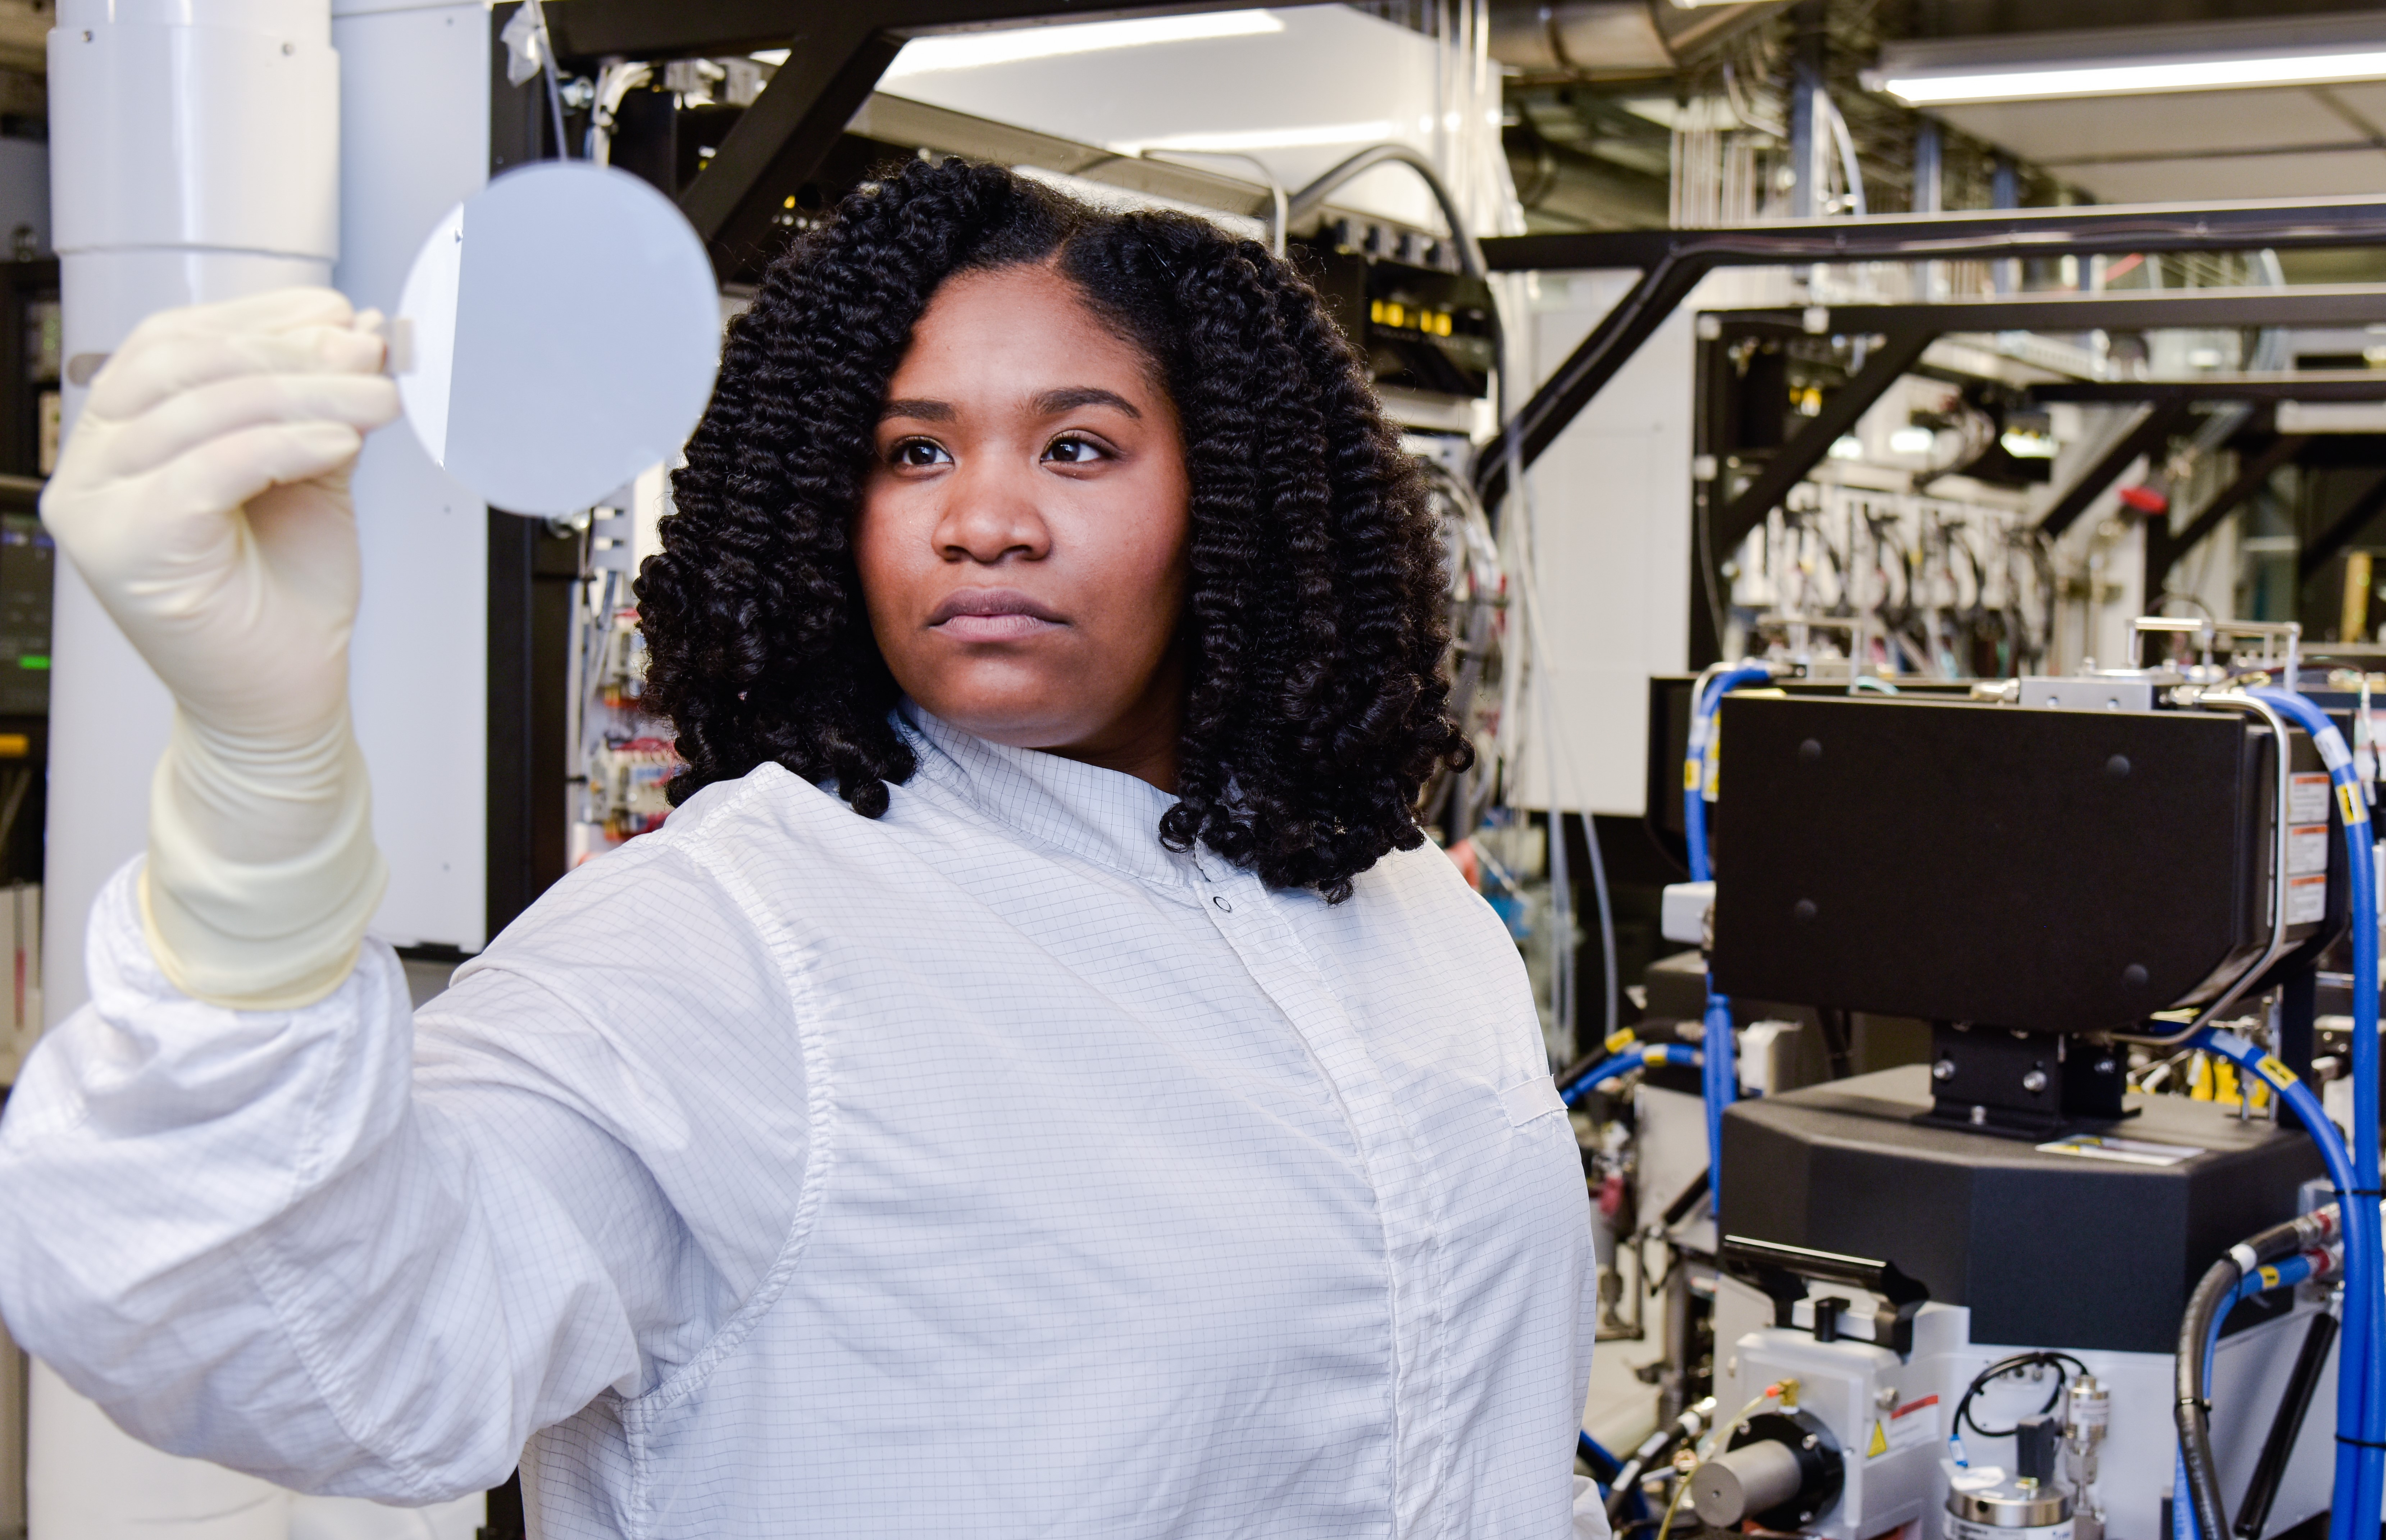 Young African American woman wearing lab attire examines lab device